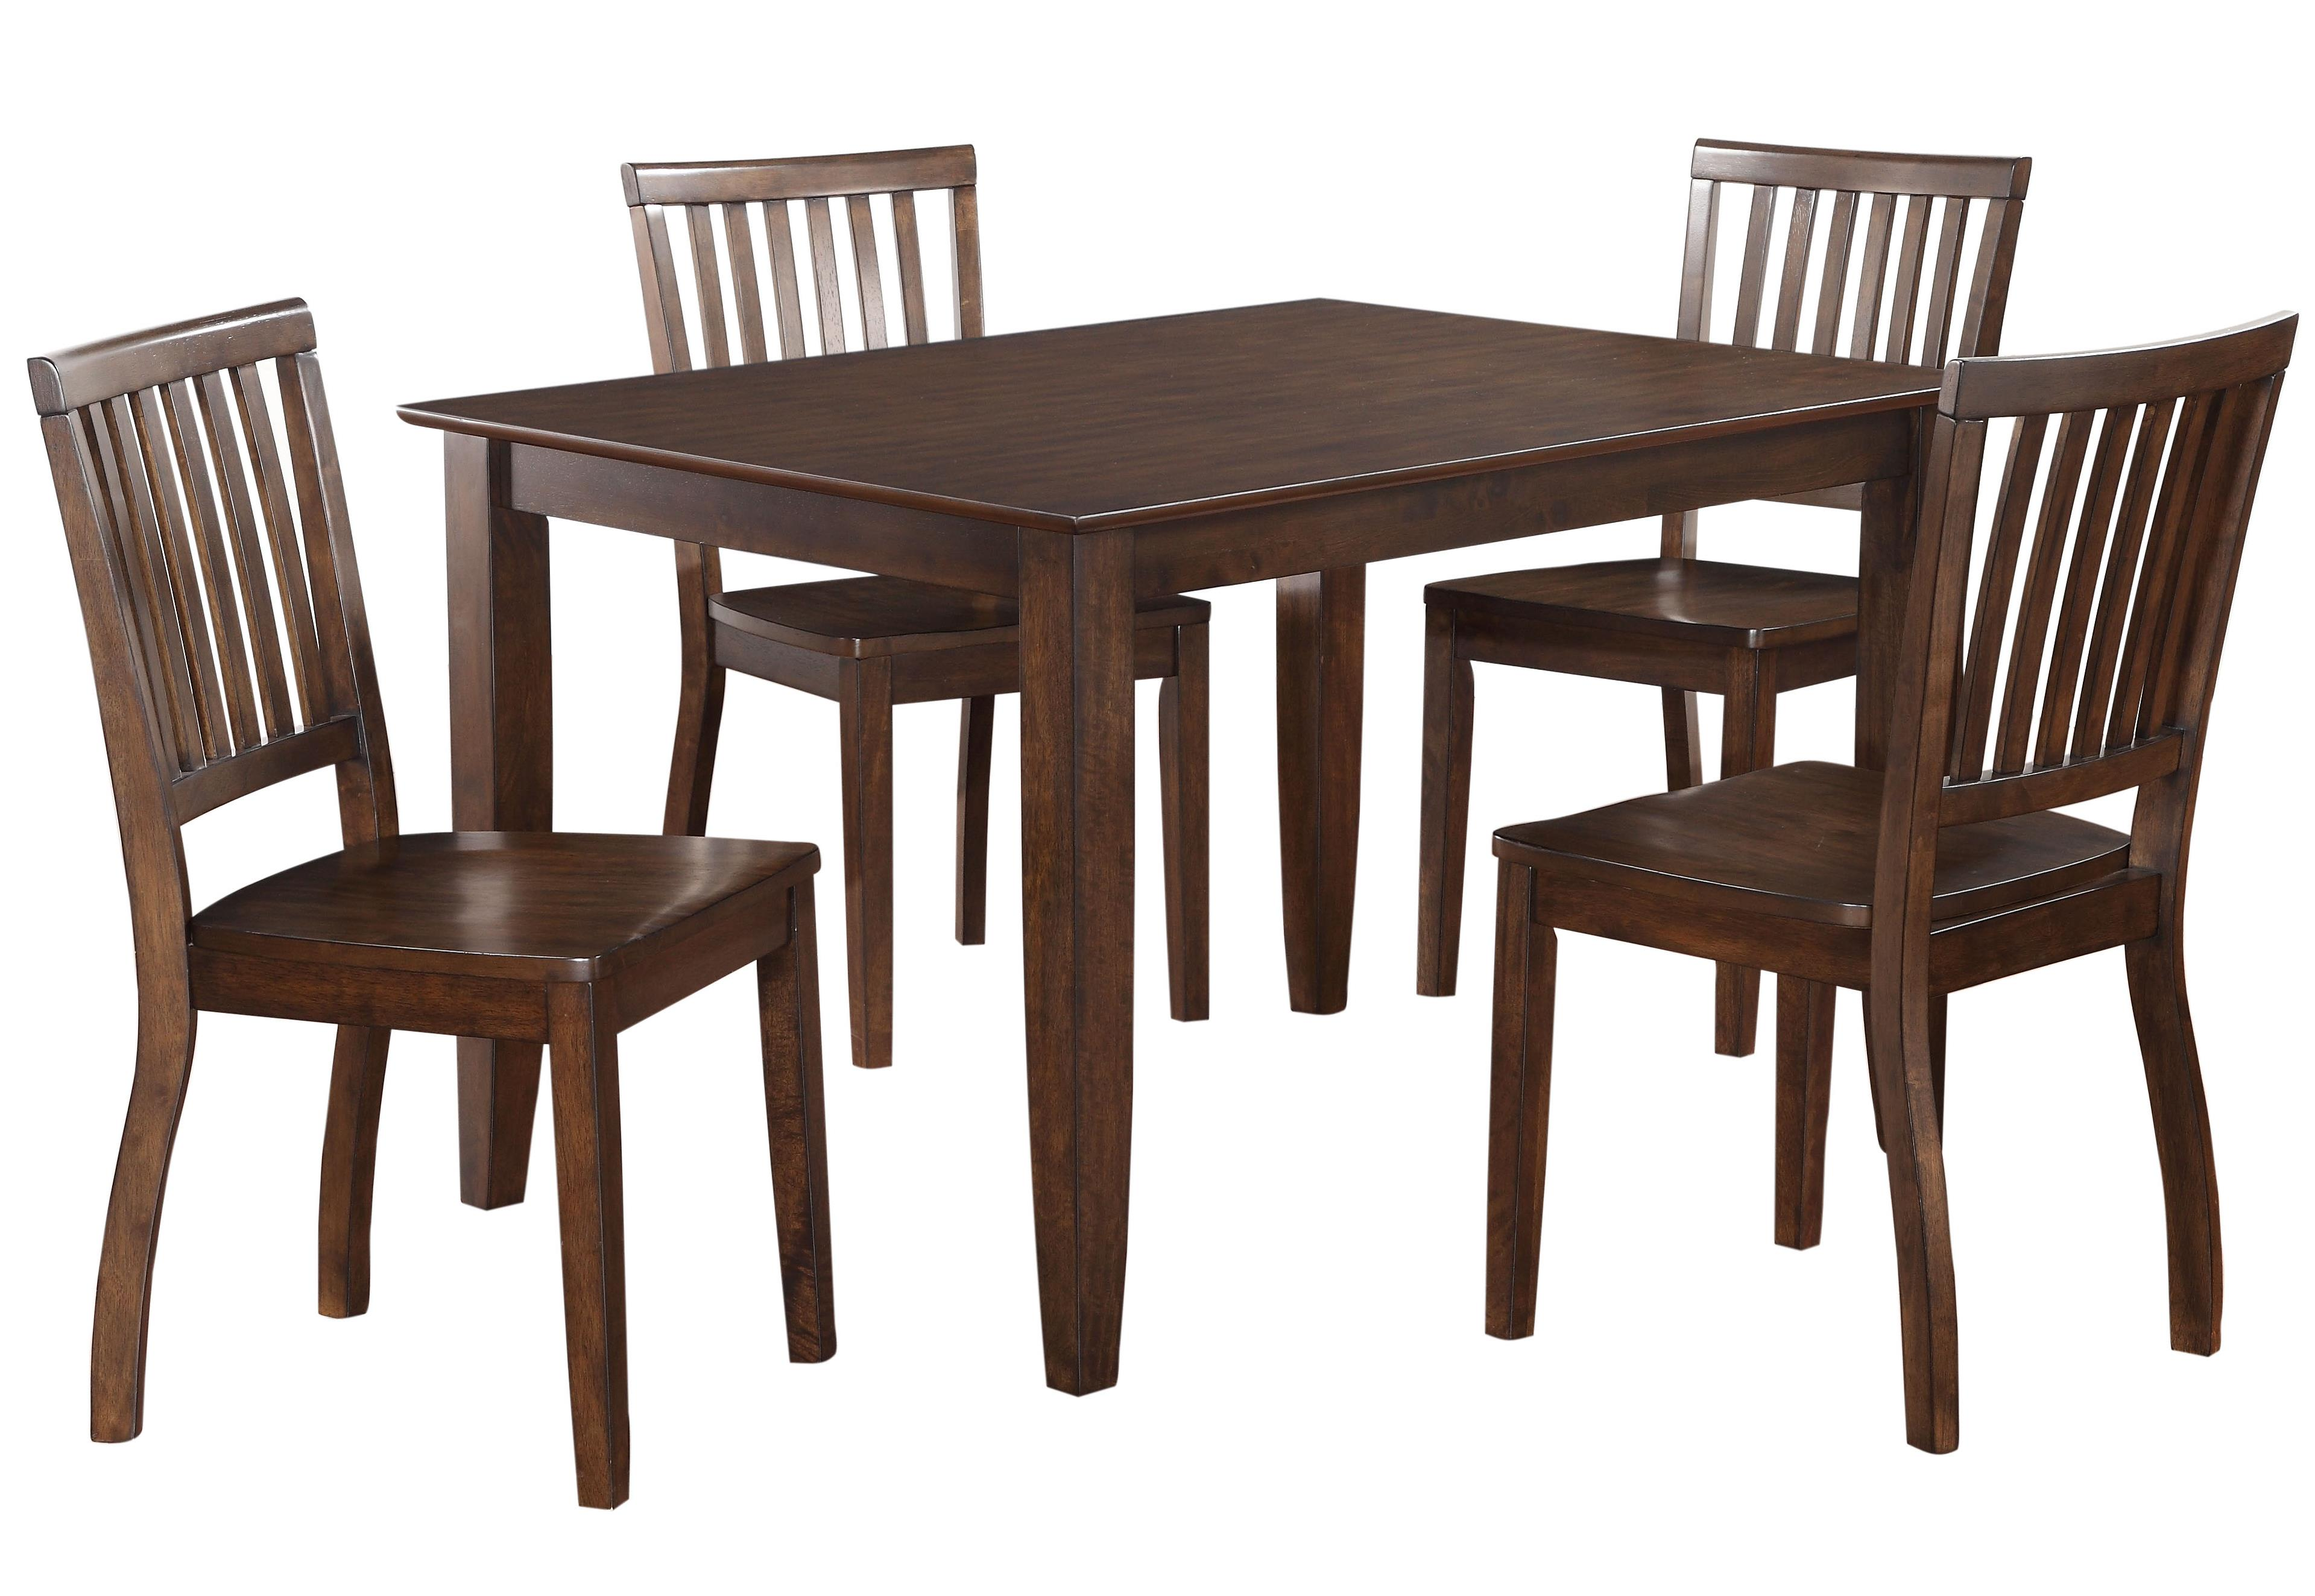 Standard Furniture Fairfax Table Set   Item Number: 12882